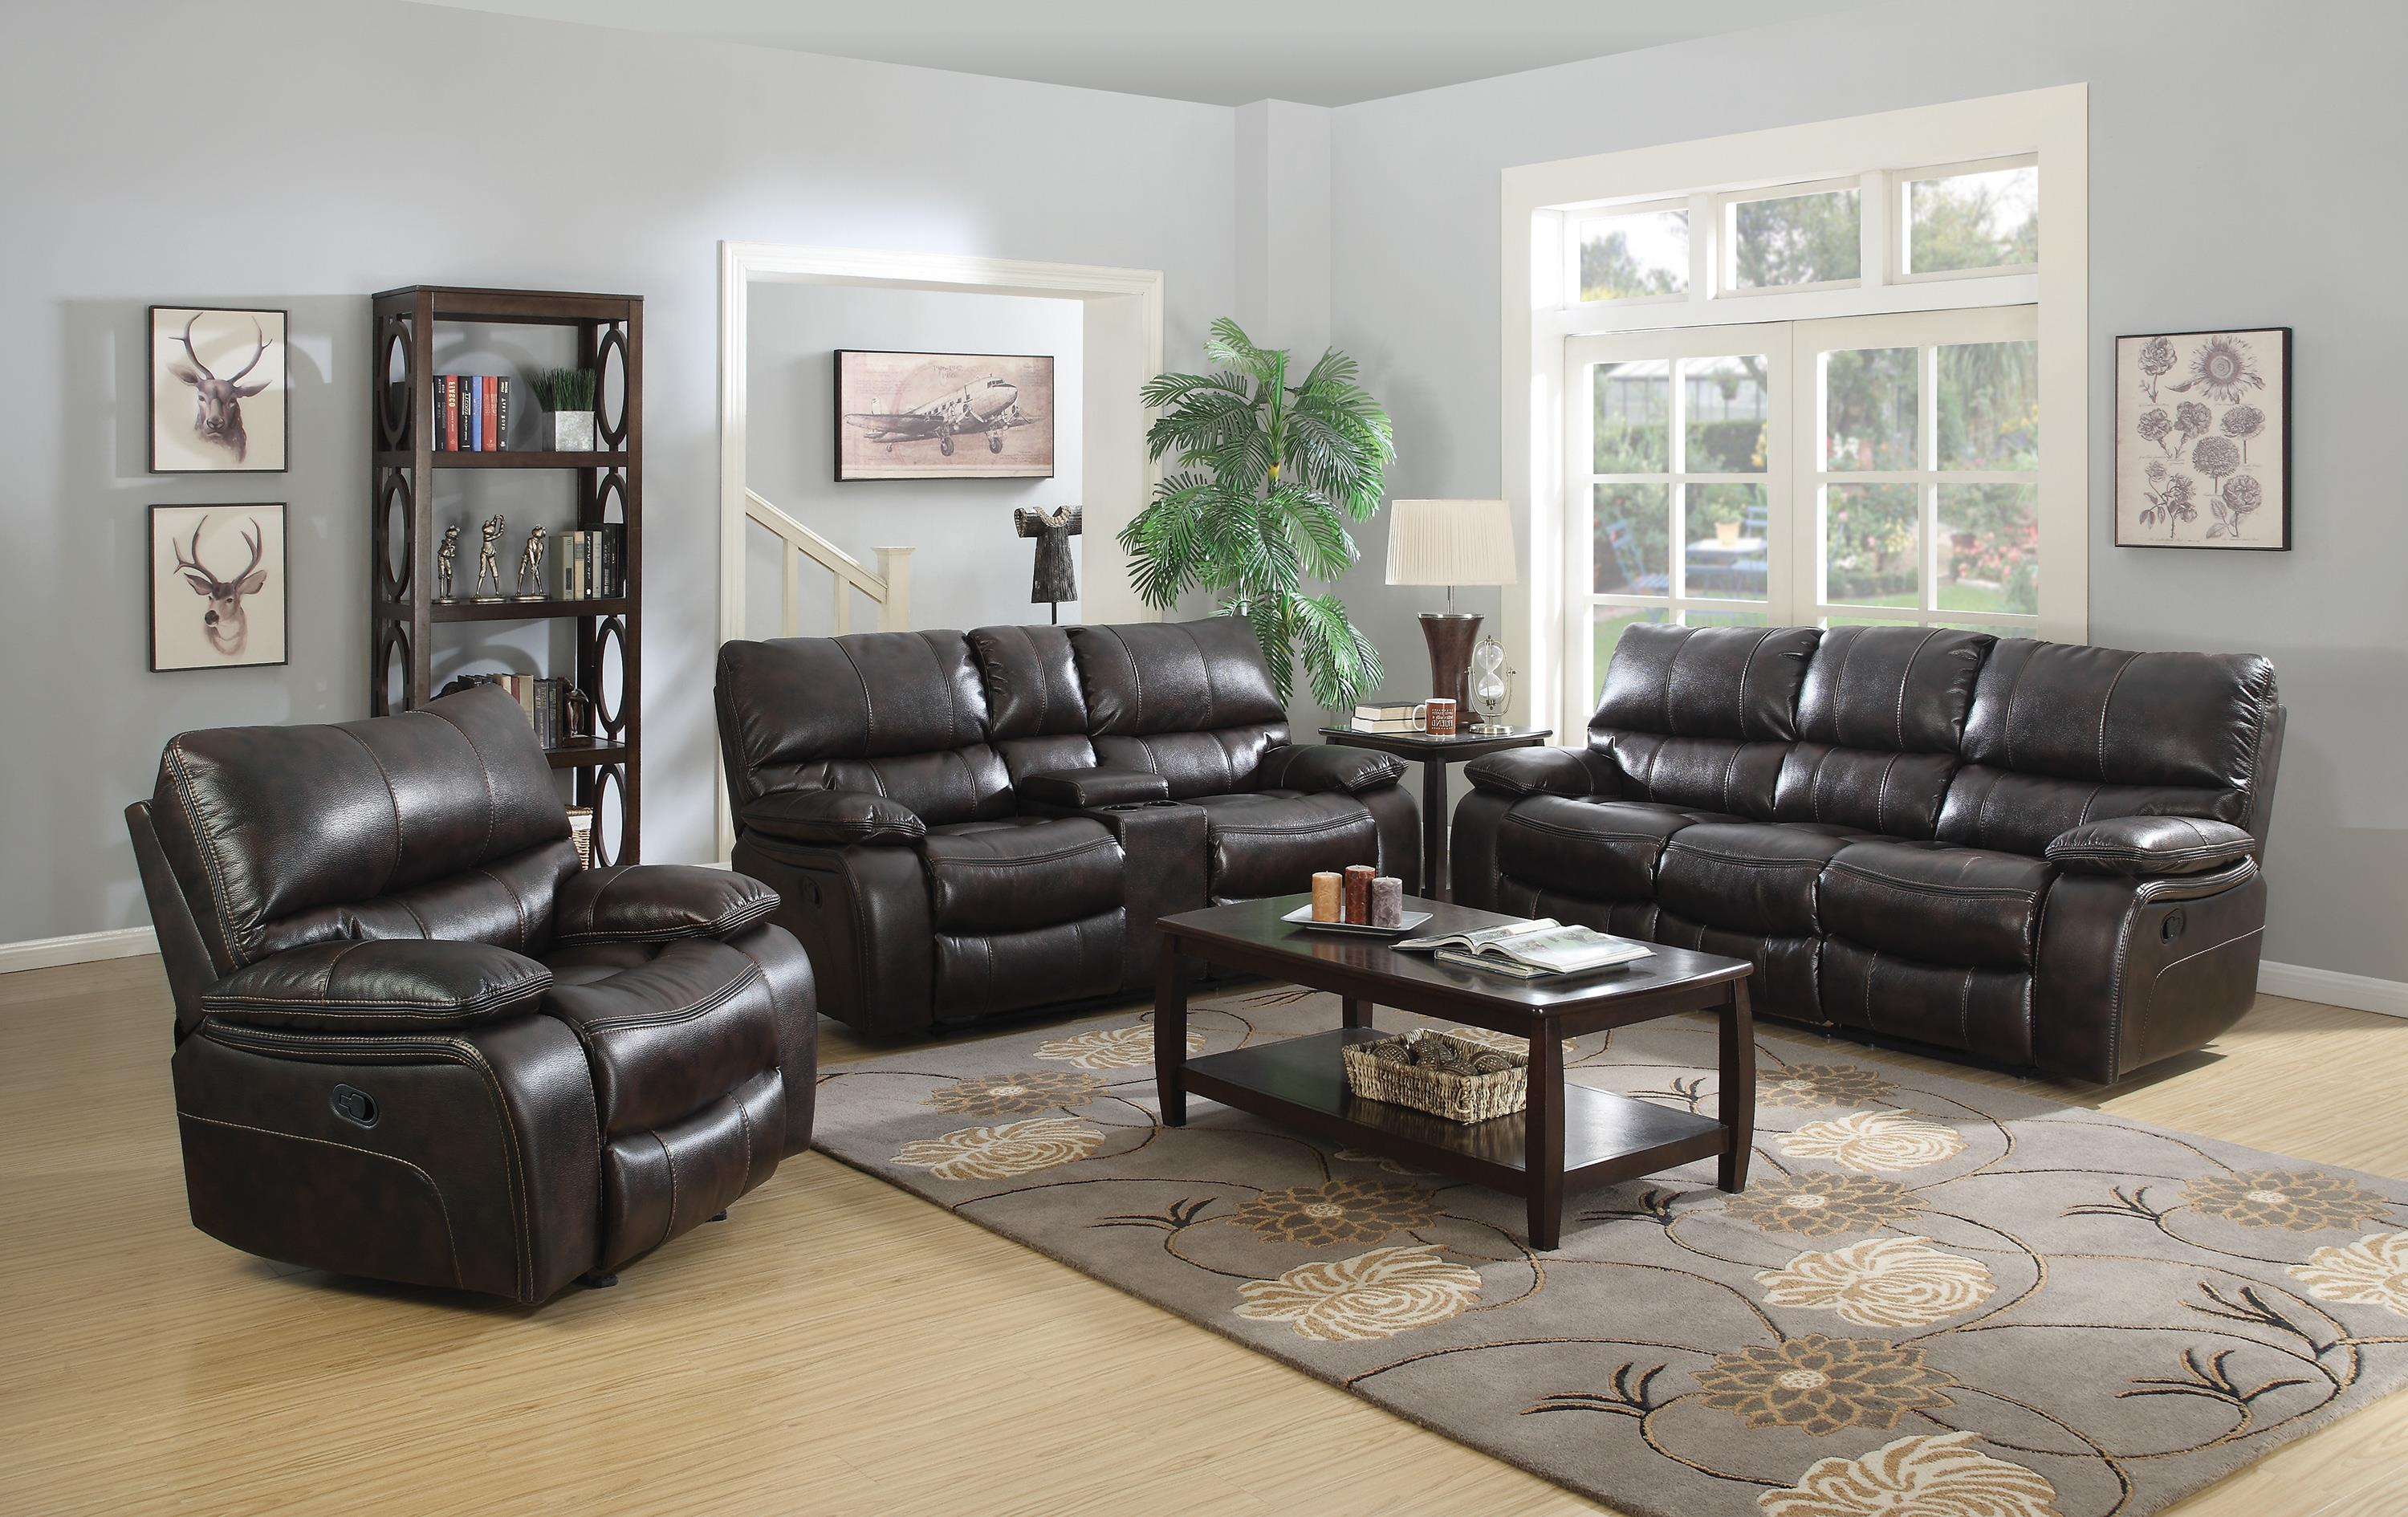 Coaster Willemse Reclining Living Room Group Value City